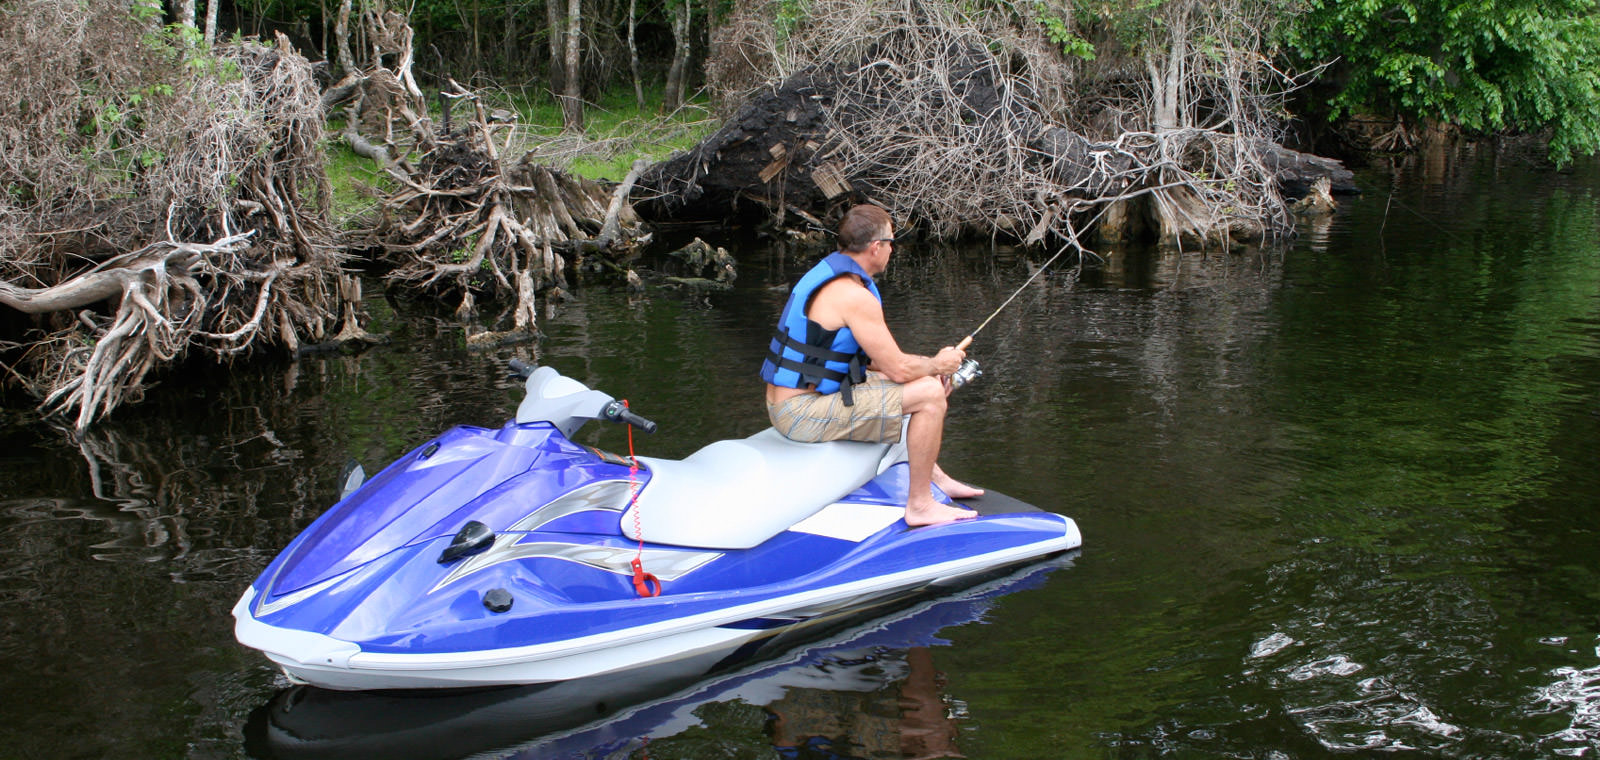 Jet Ski - Real Estate Orlando FL